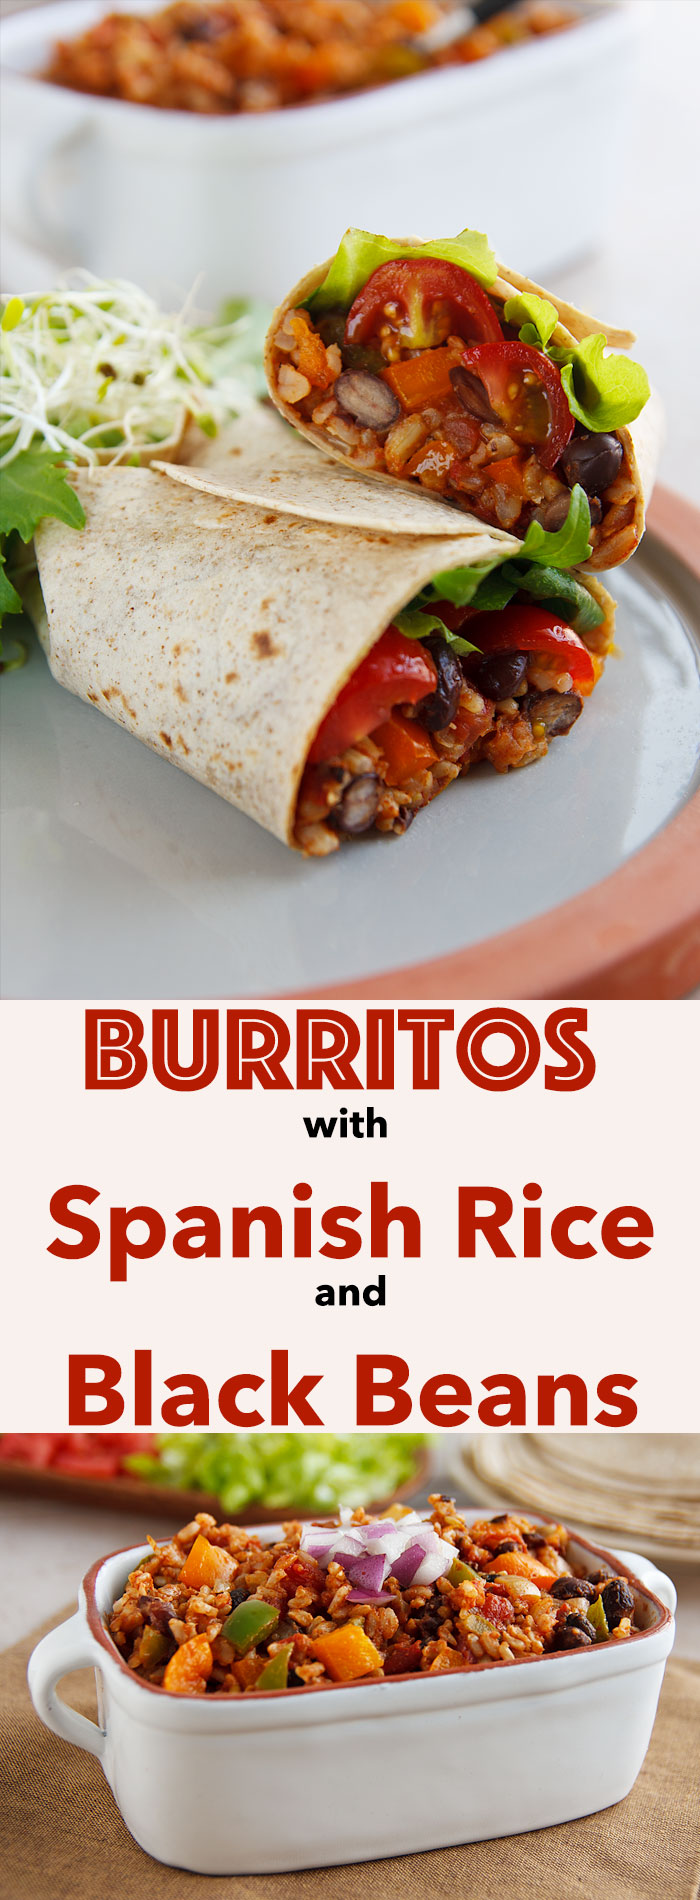 This easy vegan Spanish rice makes a great burrito filling or side dish and doesn't take much longer than heating up a can of beans.